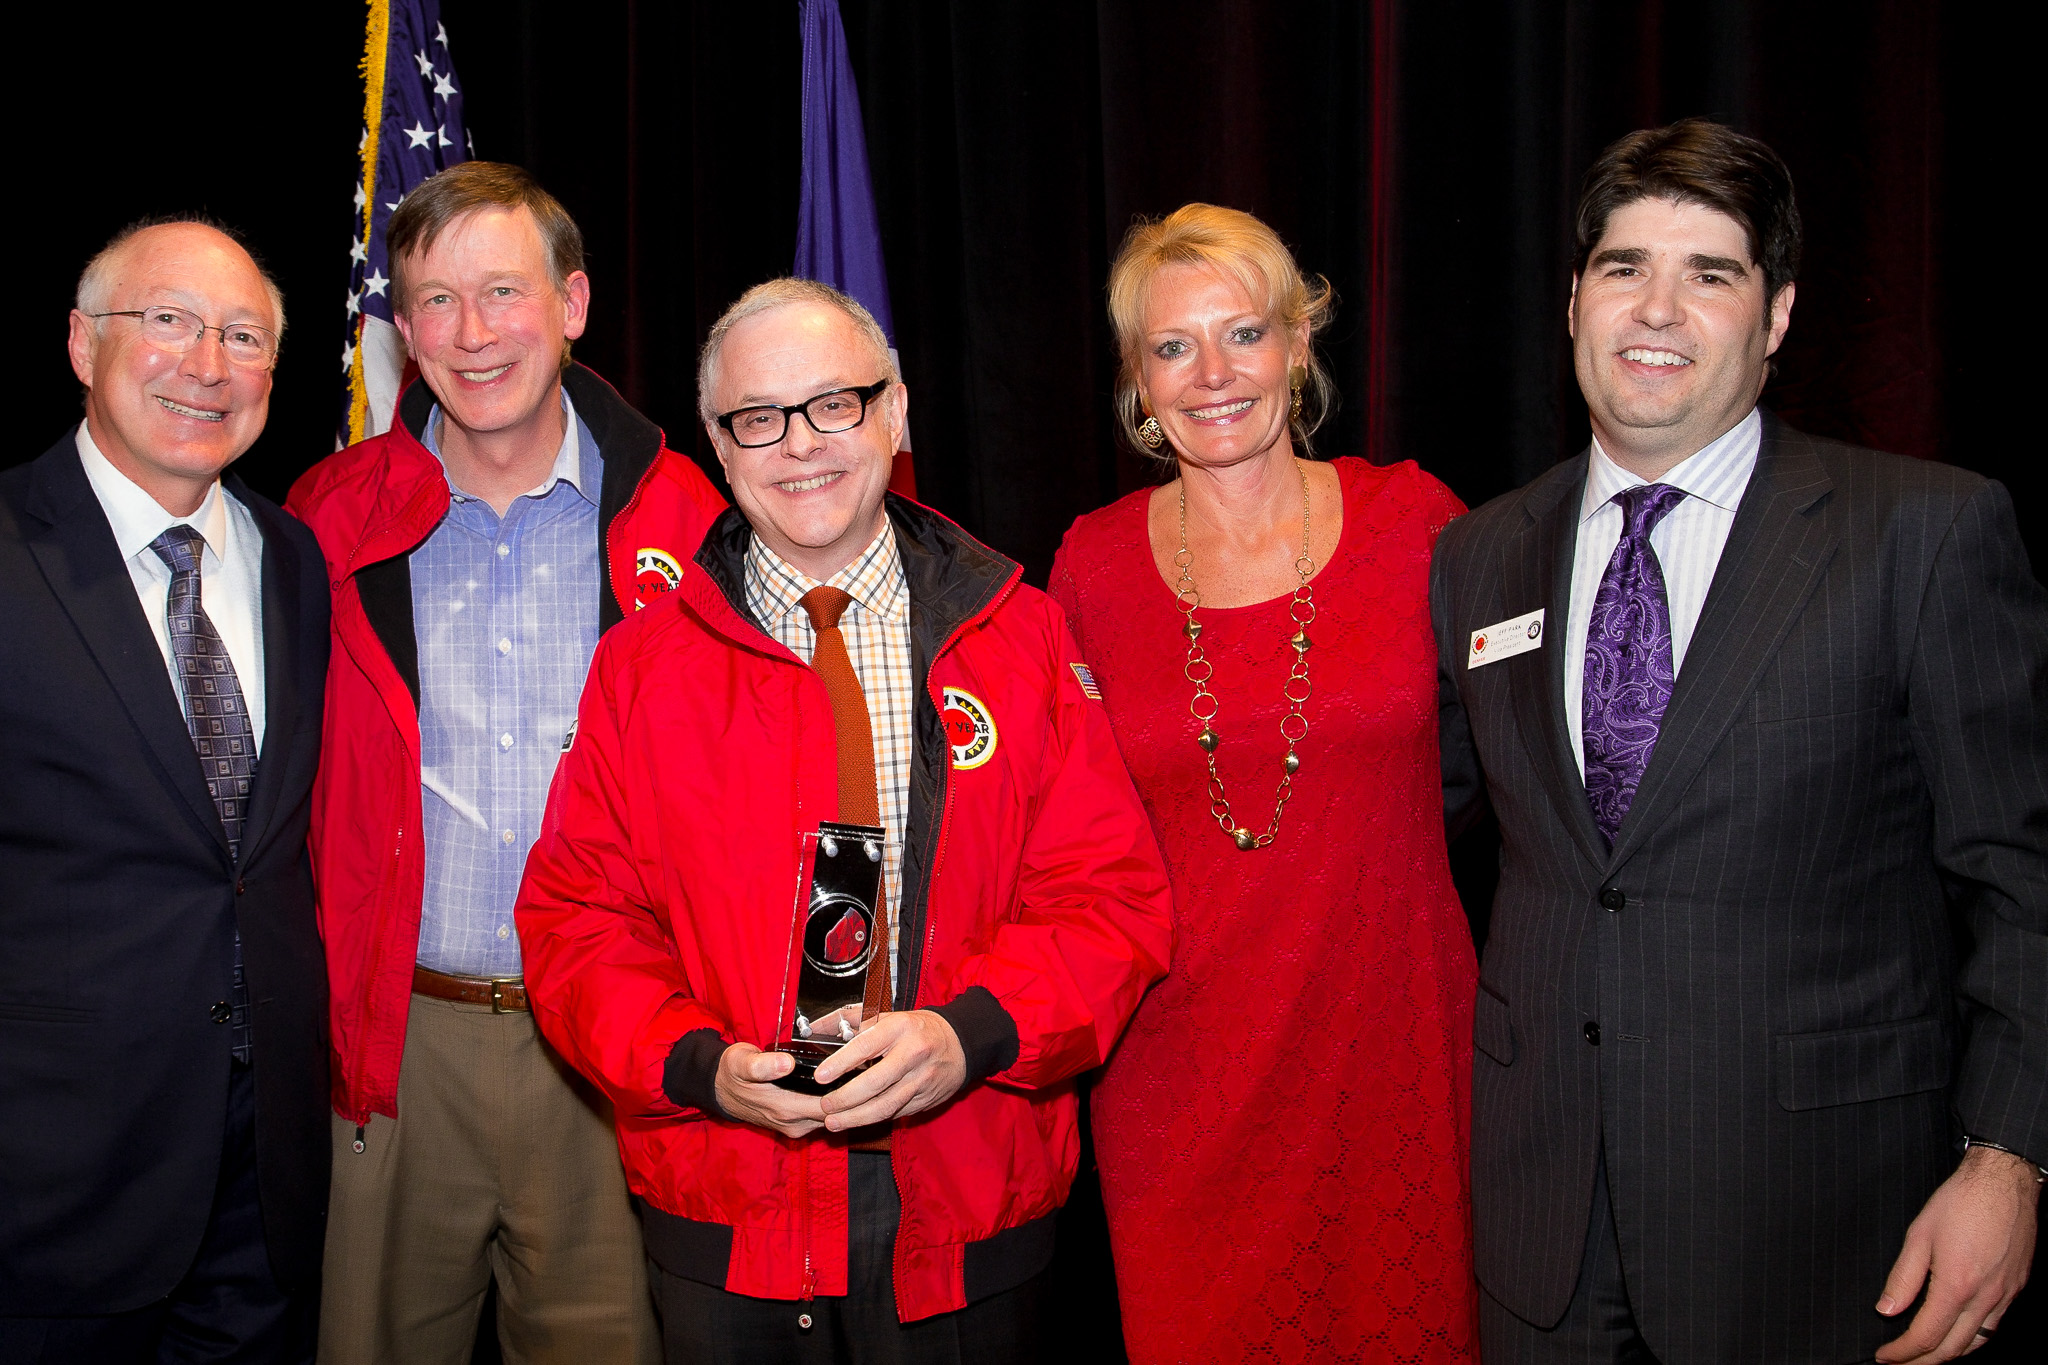 Surrounding Keynote Speaker  Neal Baer is (L-R) Former Secretary of The Interior, Ken Salazar, CO Gov. John Hickenlooper, Event Chair Jaquelin Lundquist and Jeff Park of City Year Denver